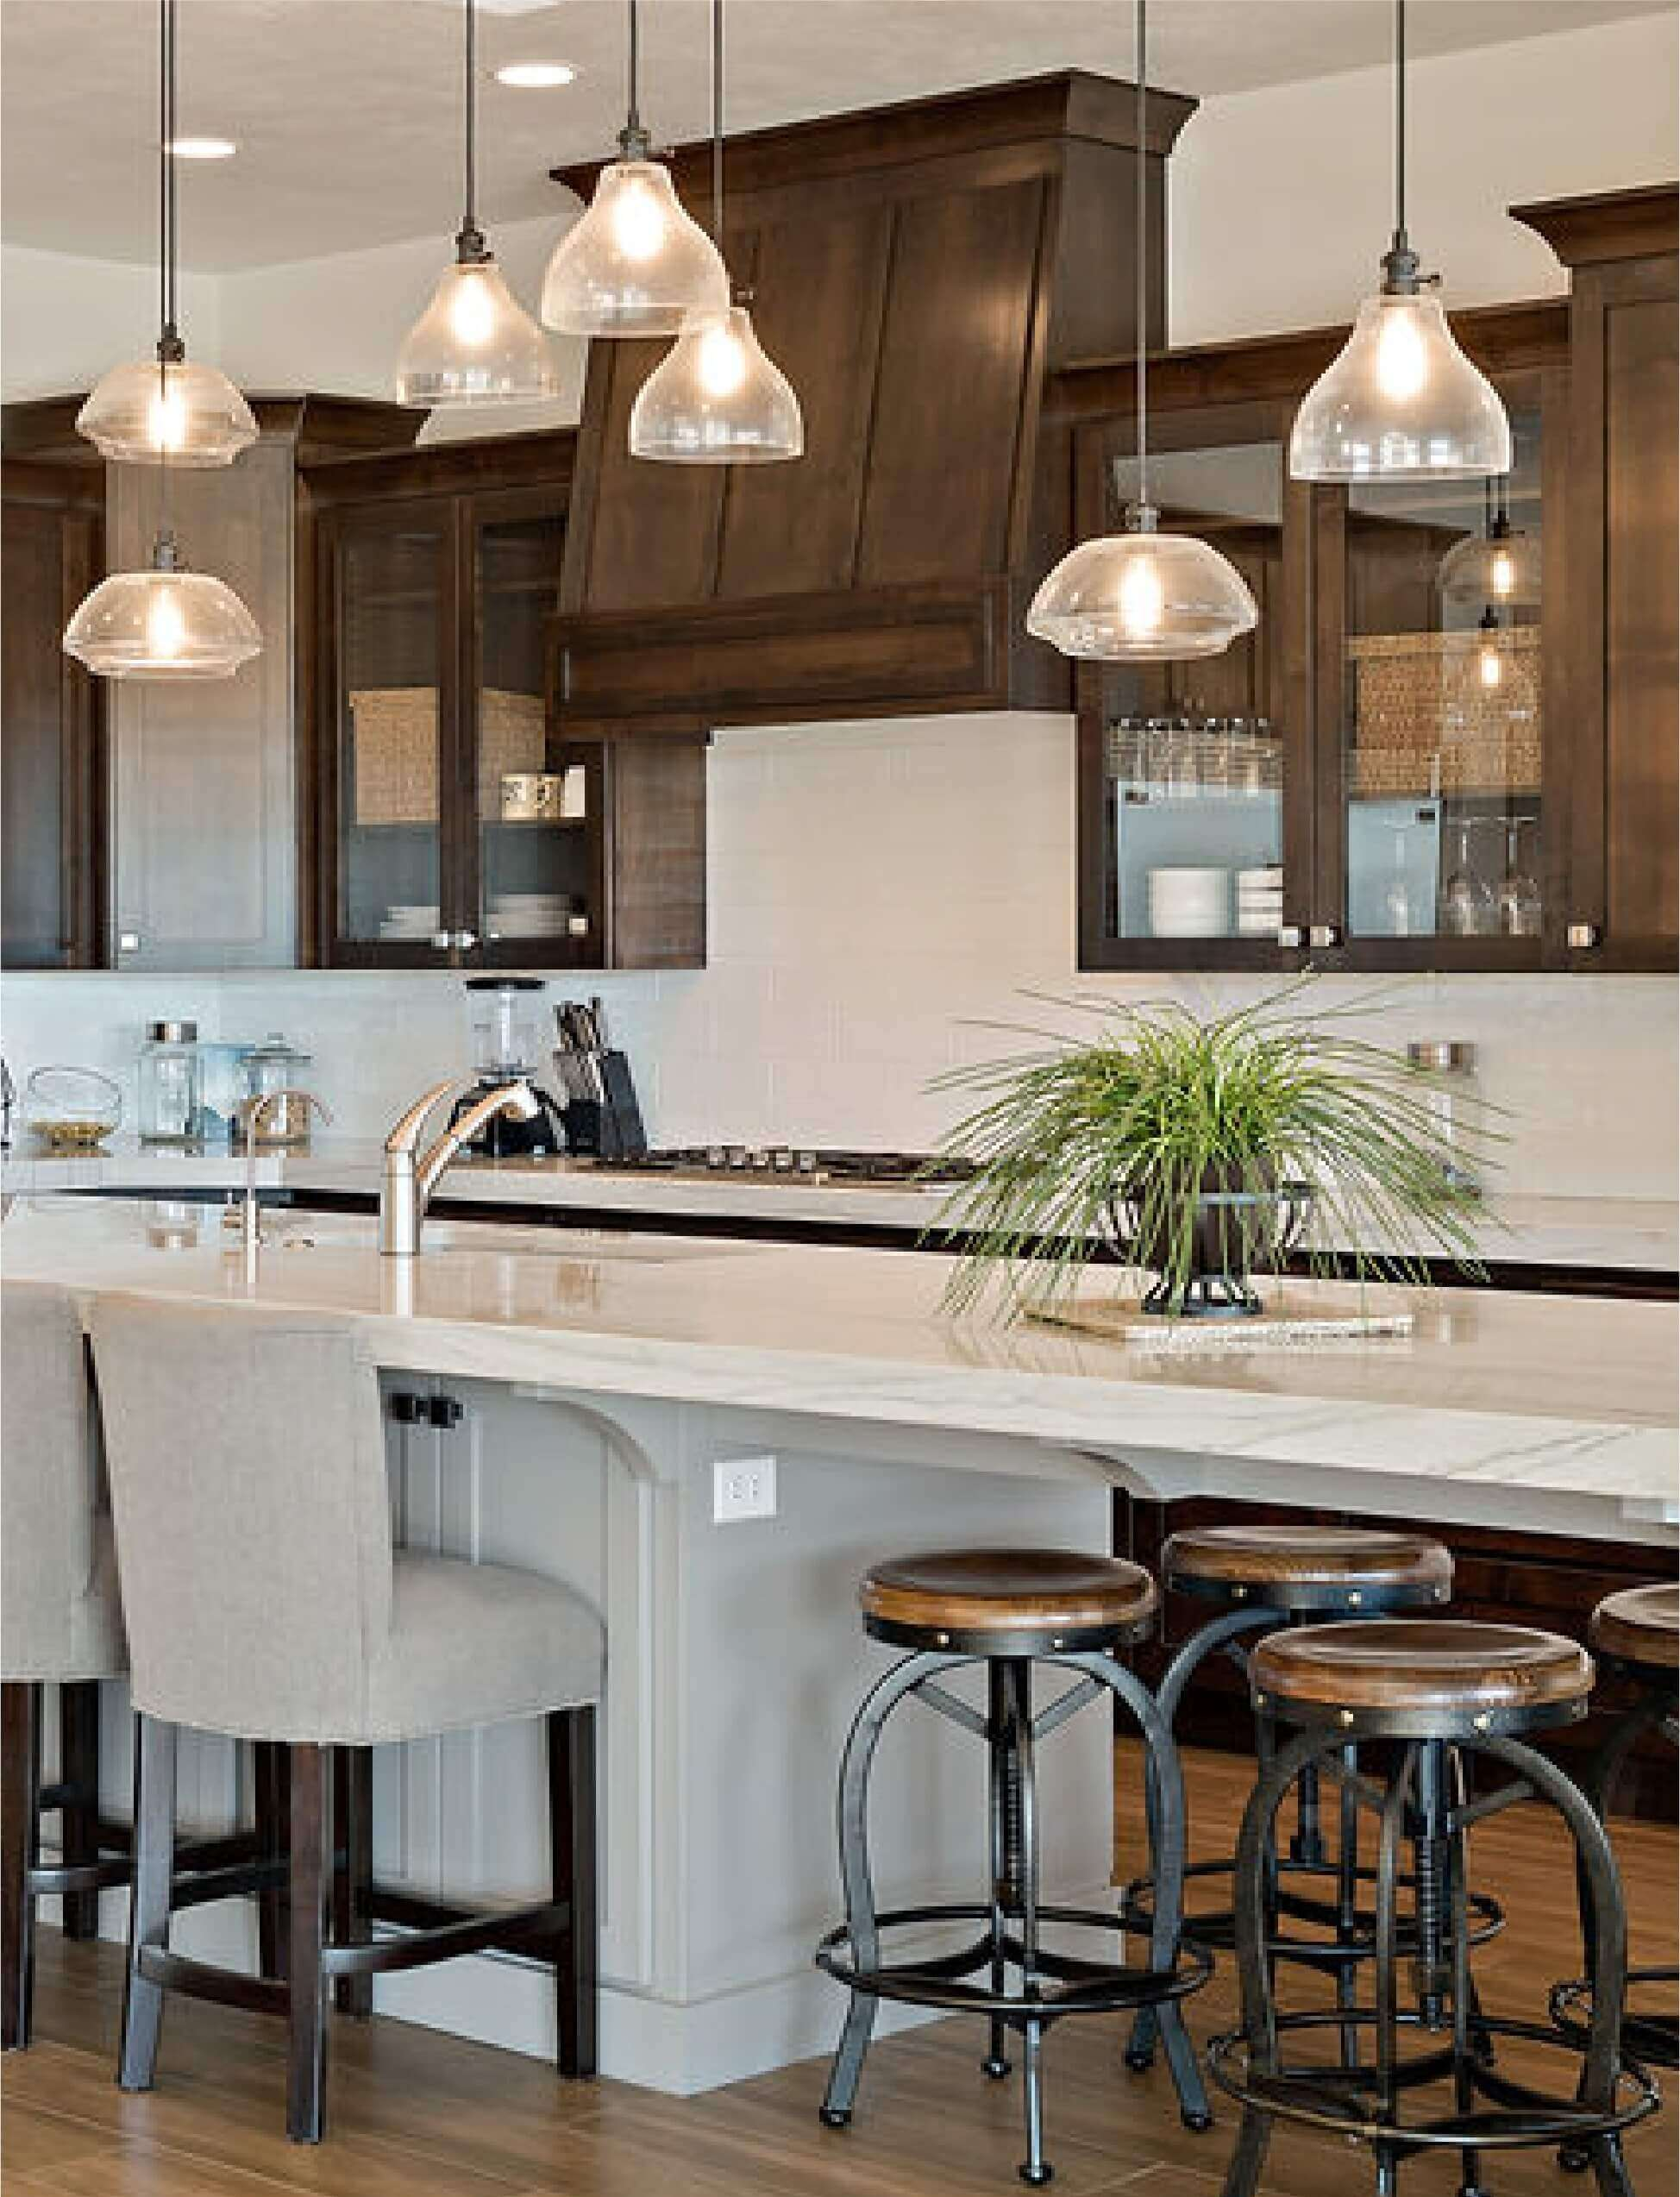 Southern Utah Home with Custom Kitchen and Pendant Lighting